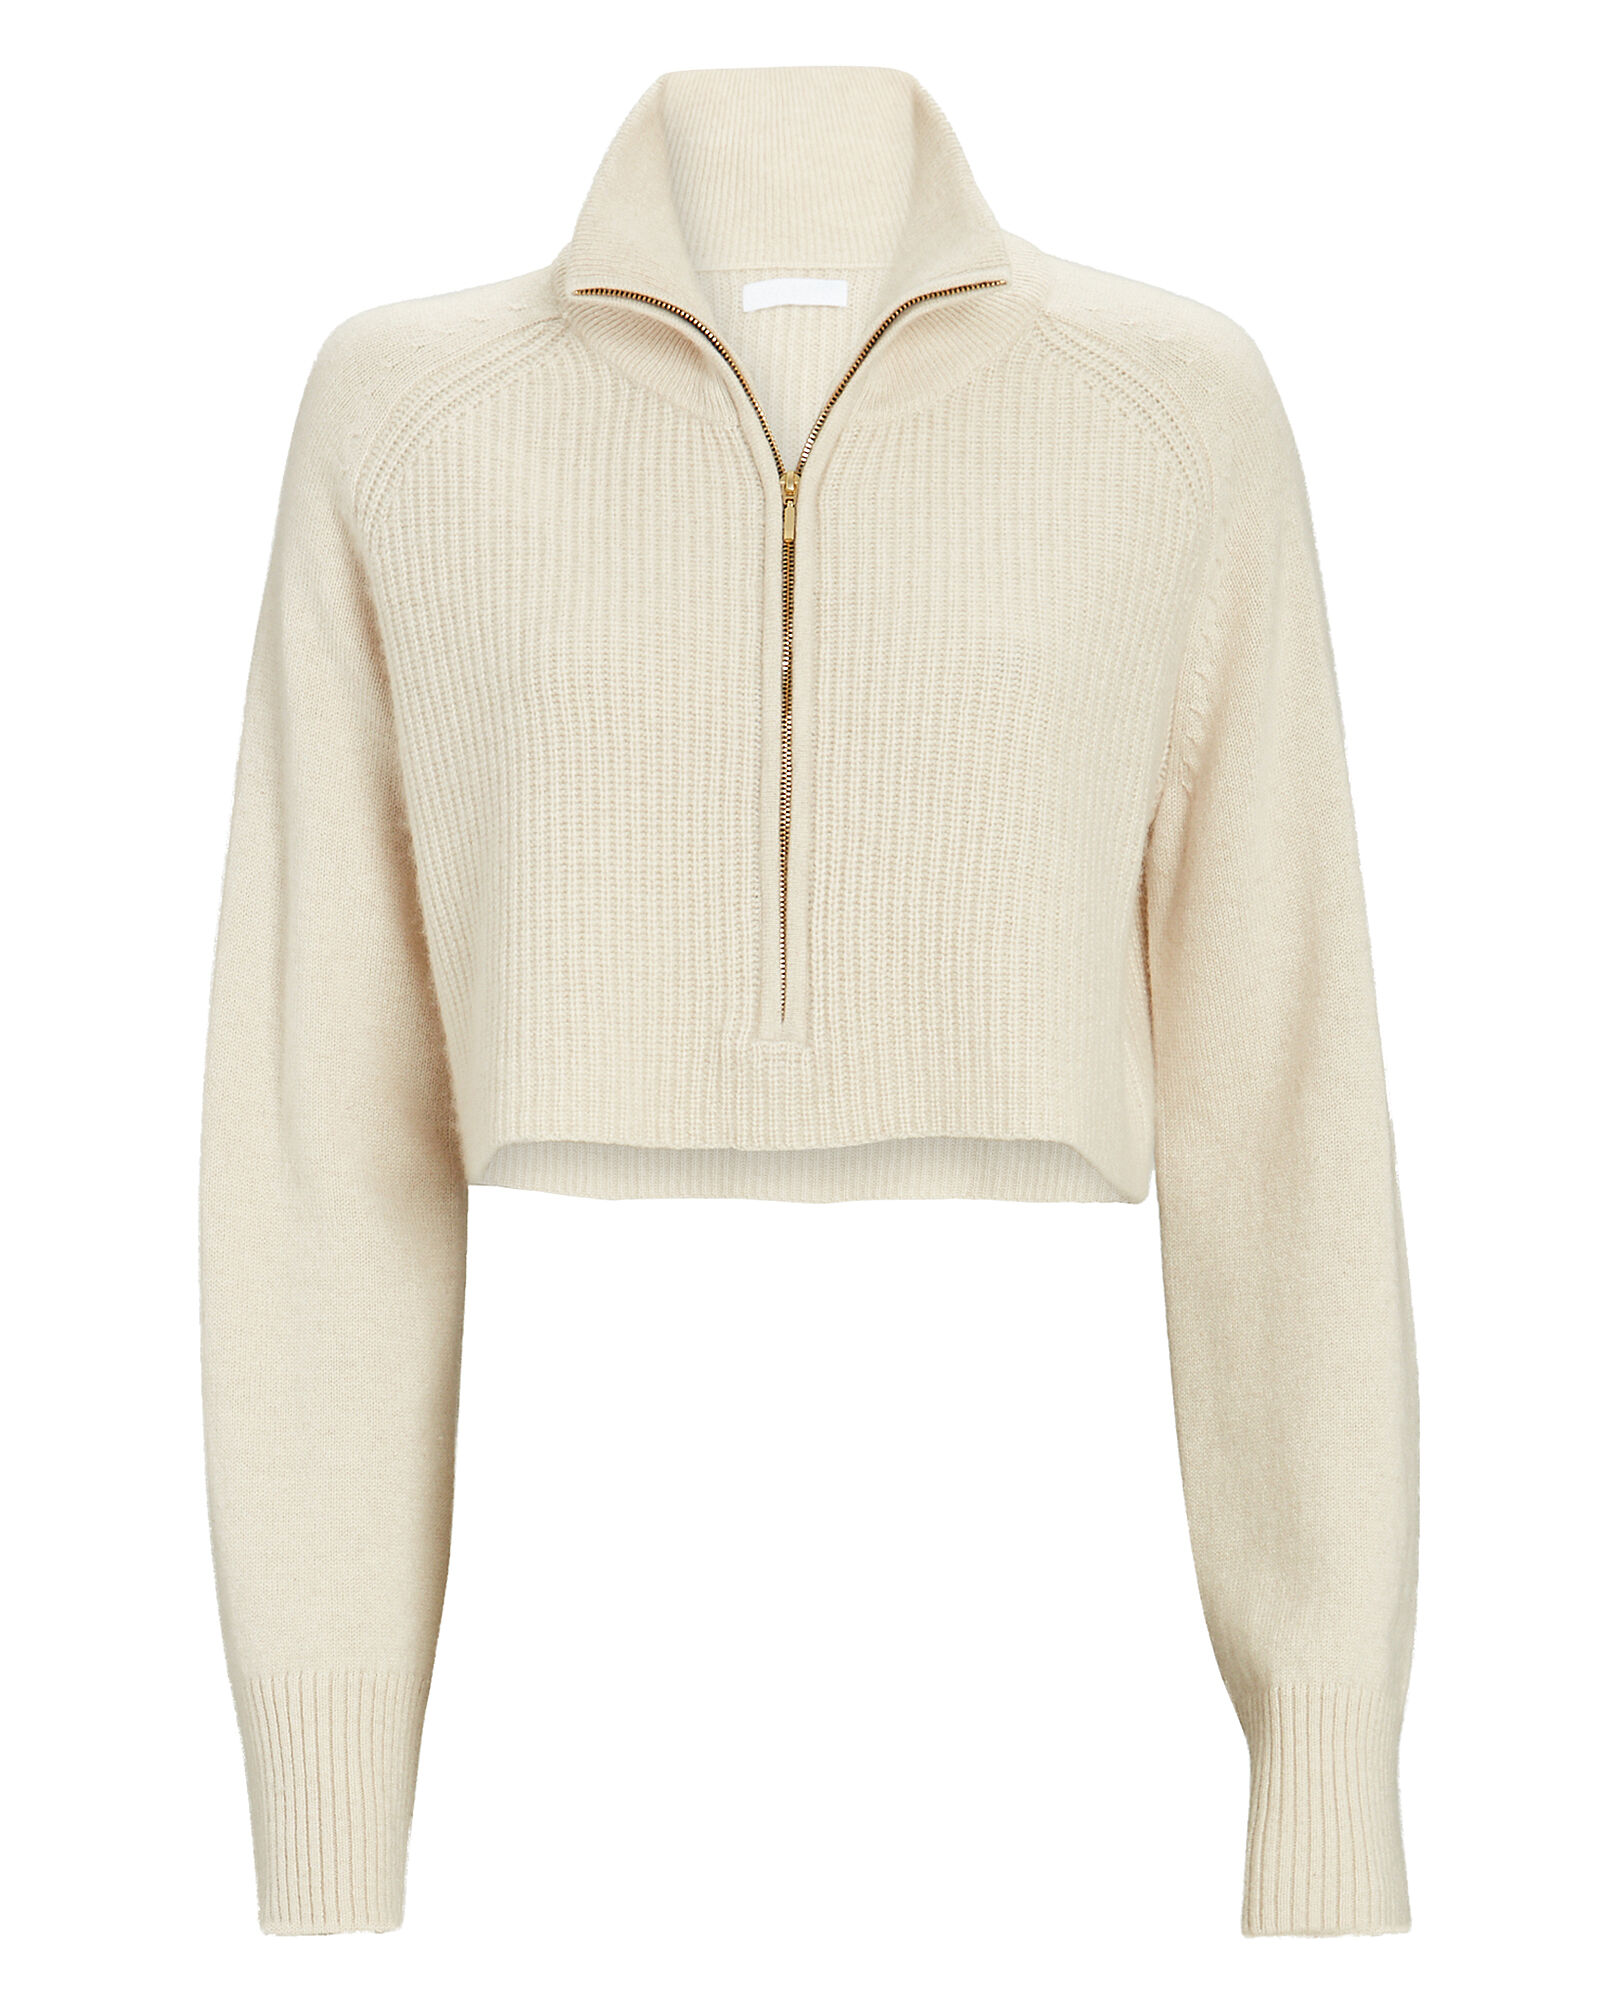 Nash Cropped Cashmere Sweater, IVORY, hi-res